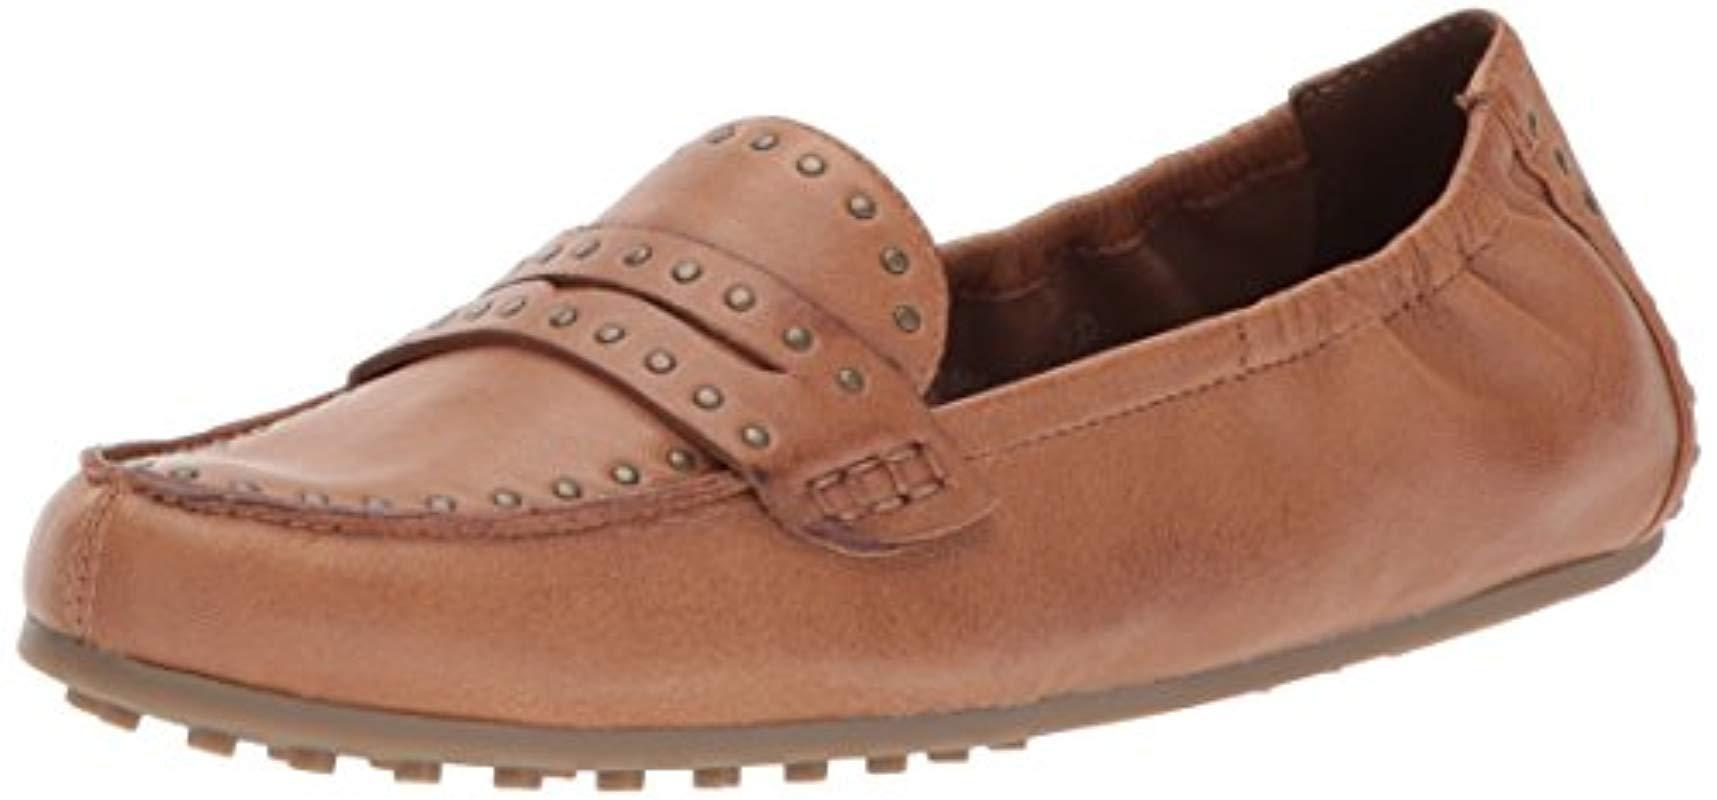 fb57c1277a8 Lyst - Aerosoles Drive Up Penny Loafer in Brown - Save 37.9746835443038%